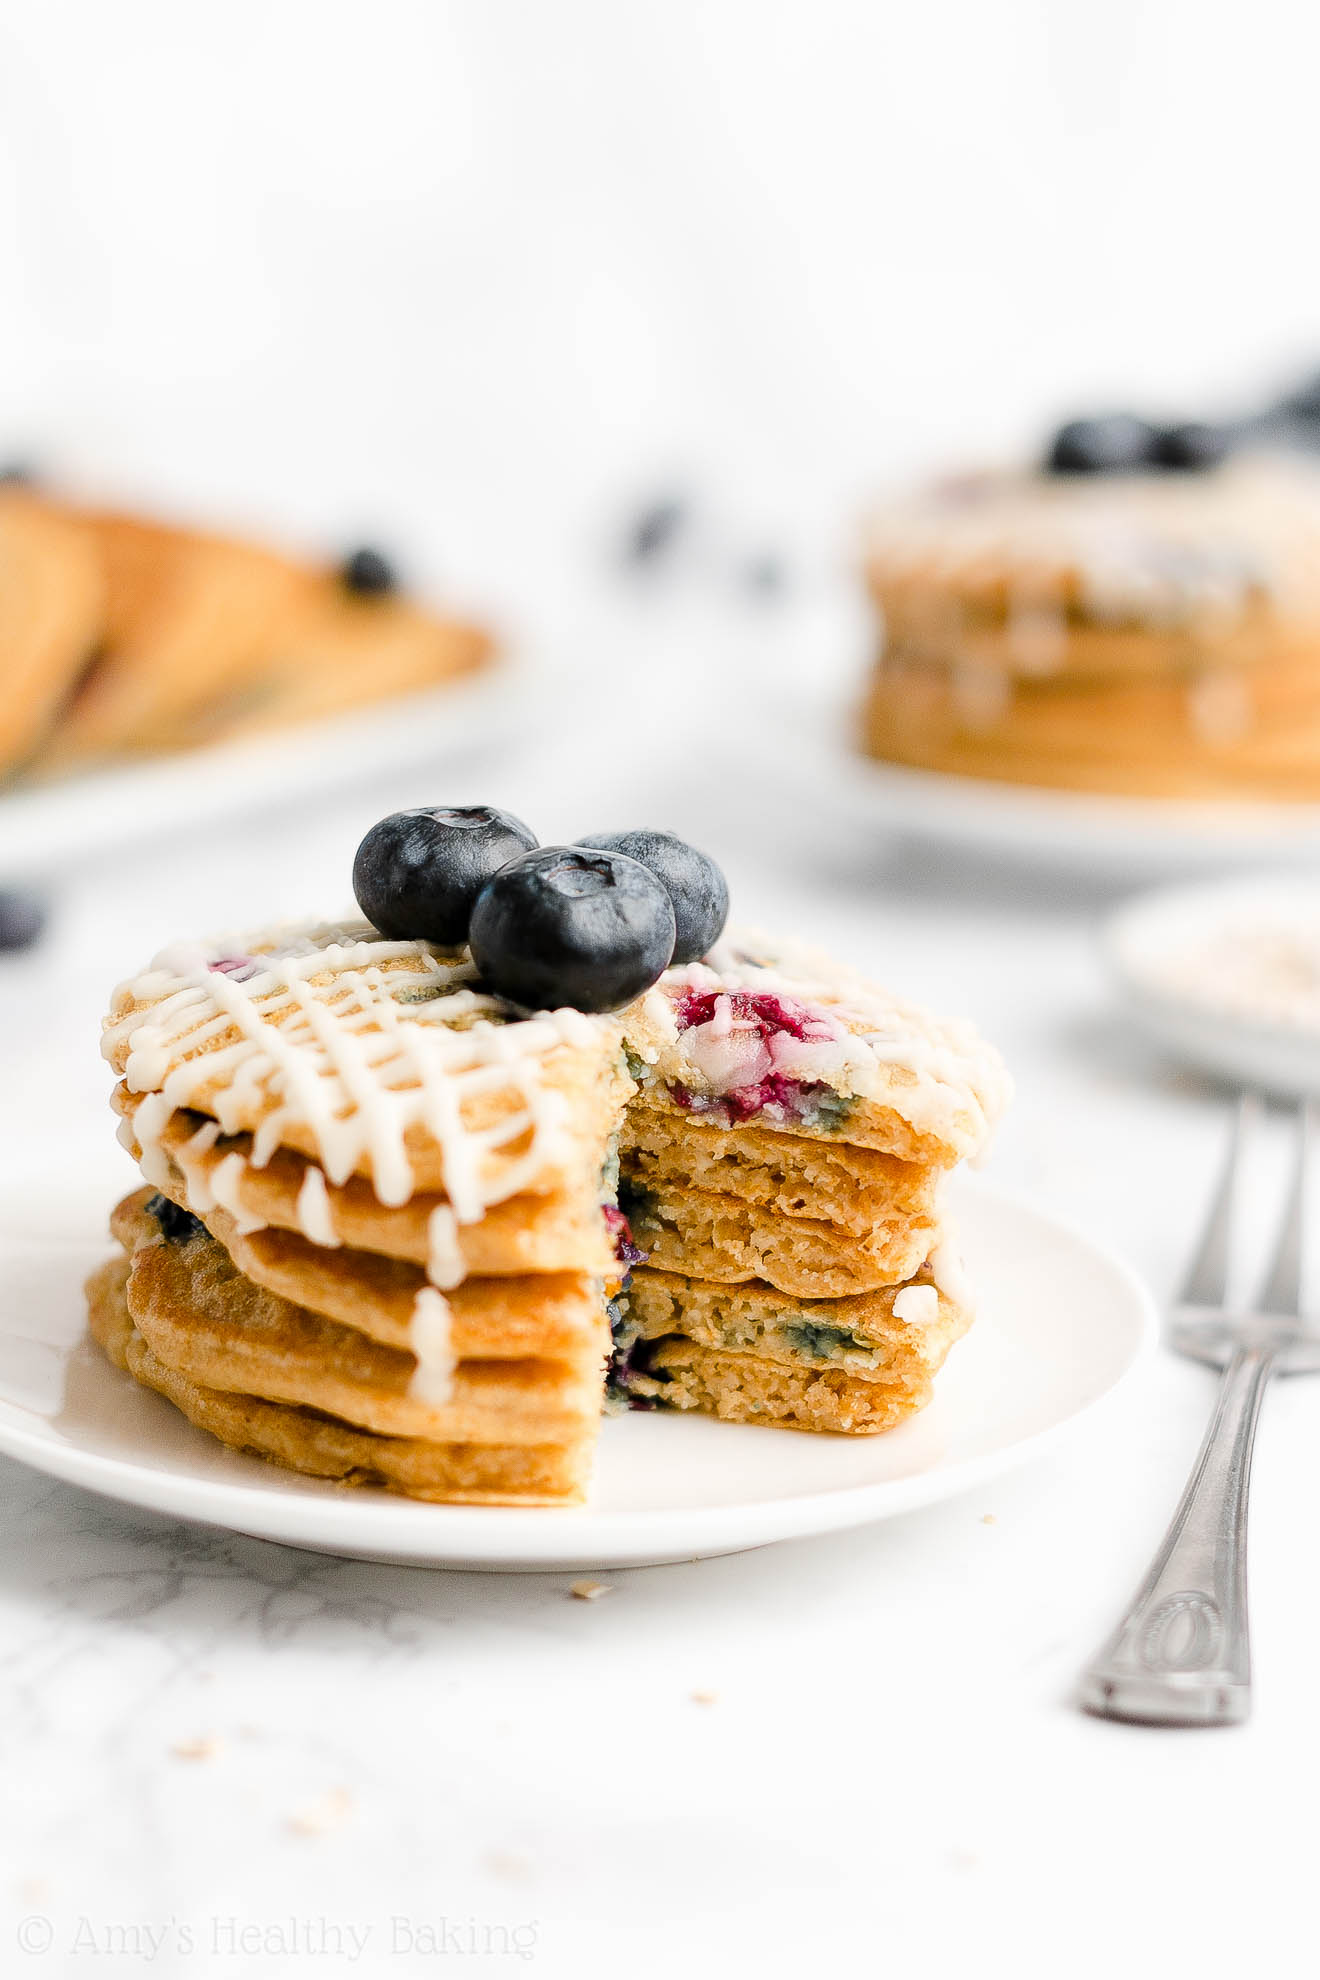 Easy Healthy Low Sugar Fluffy Whole Wheat Blueberry Oatmeal Pancakes